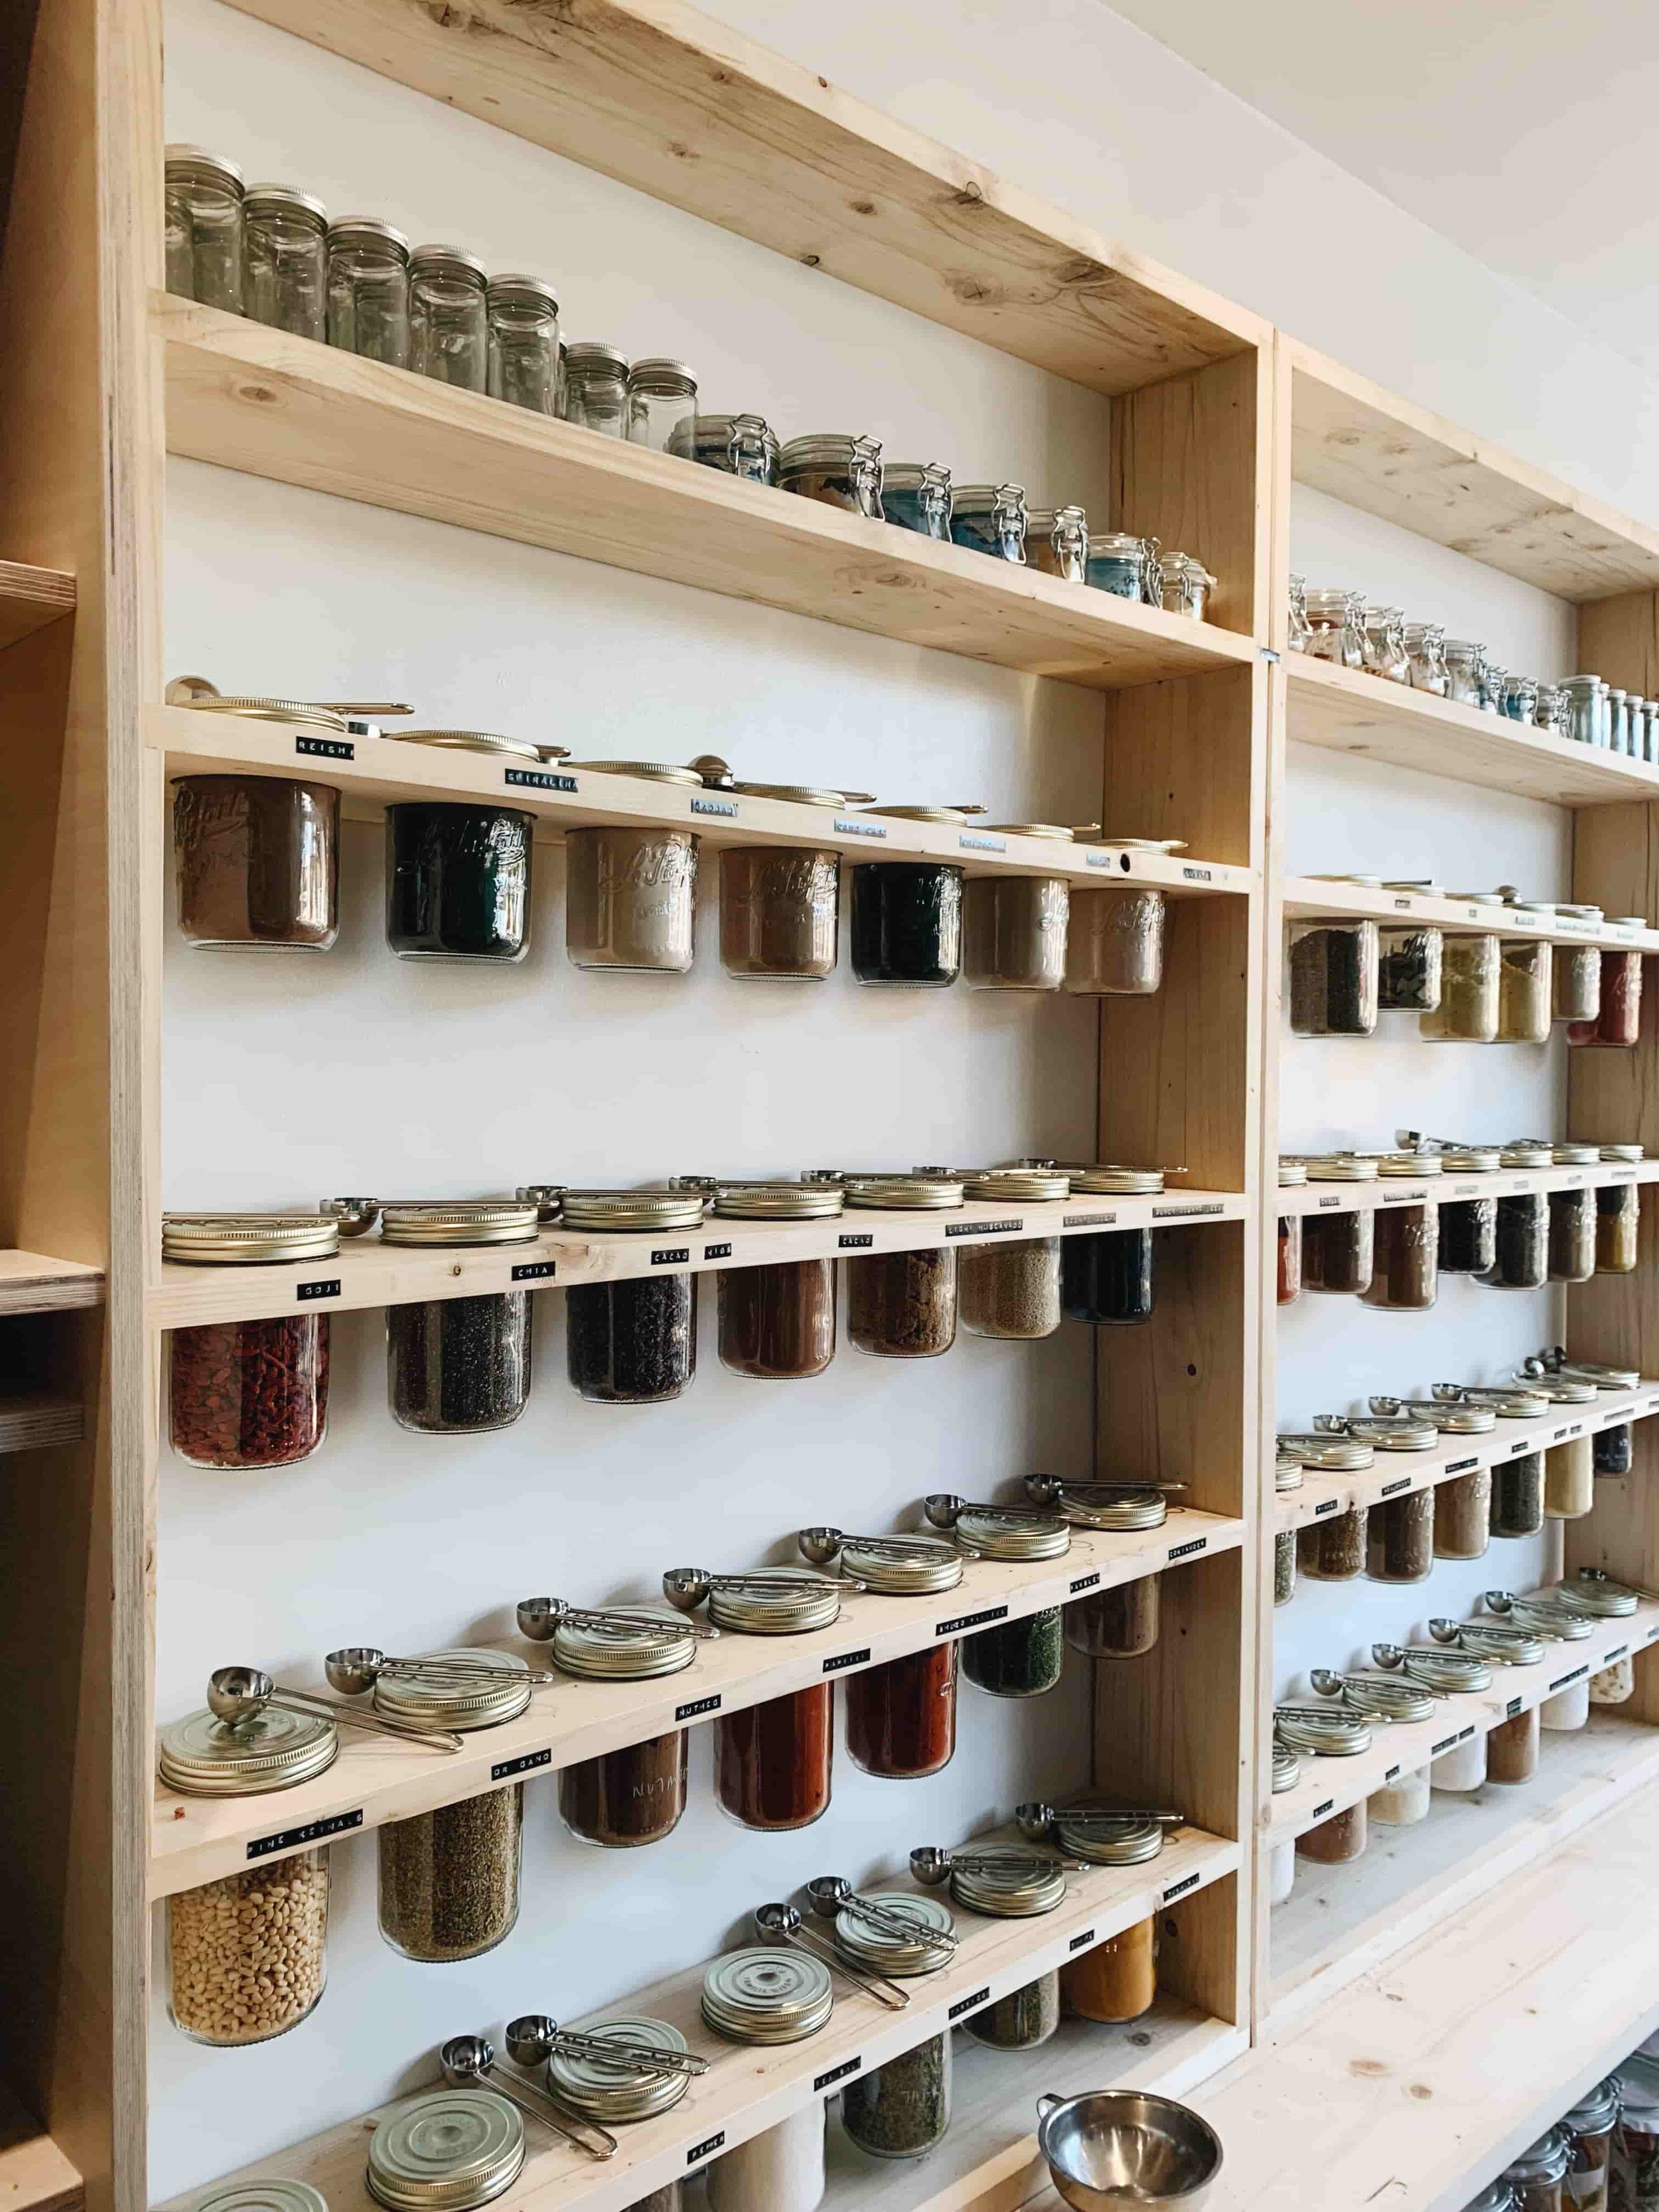 Bring Your Own; the new zero-waste London store in Nunhead